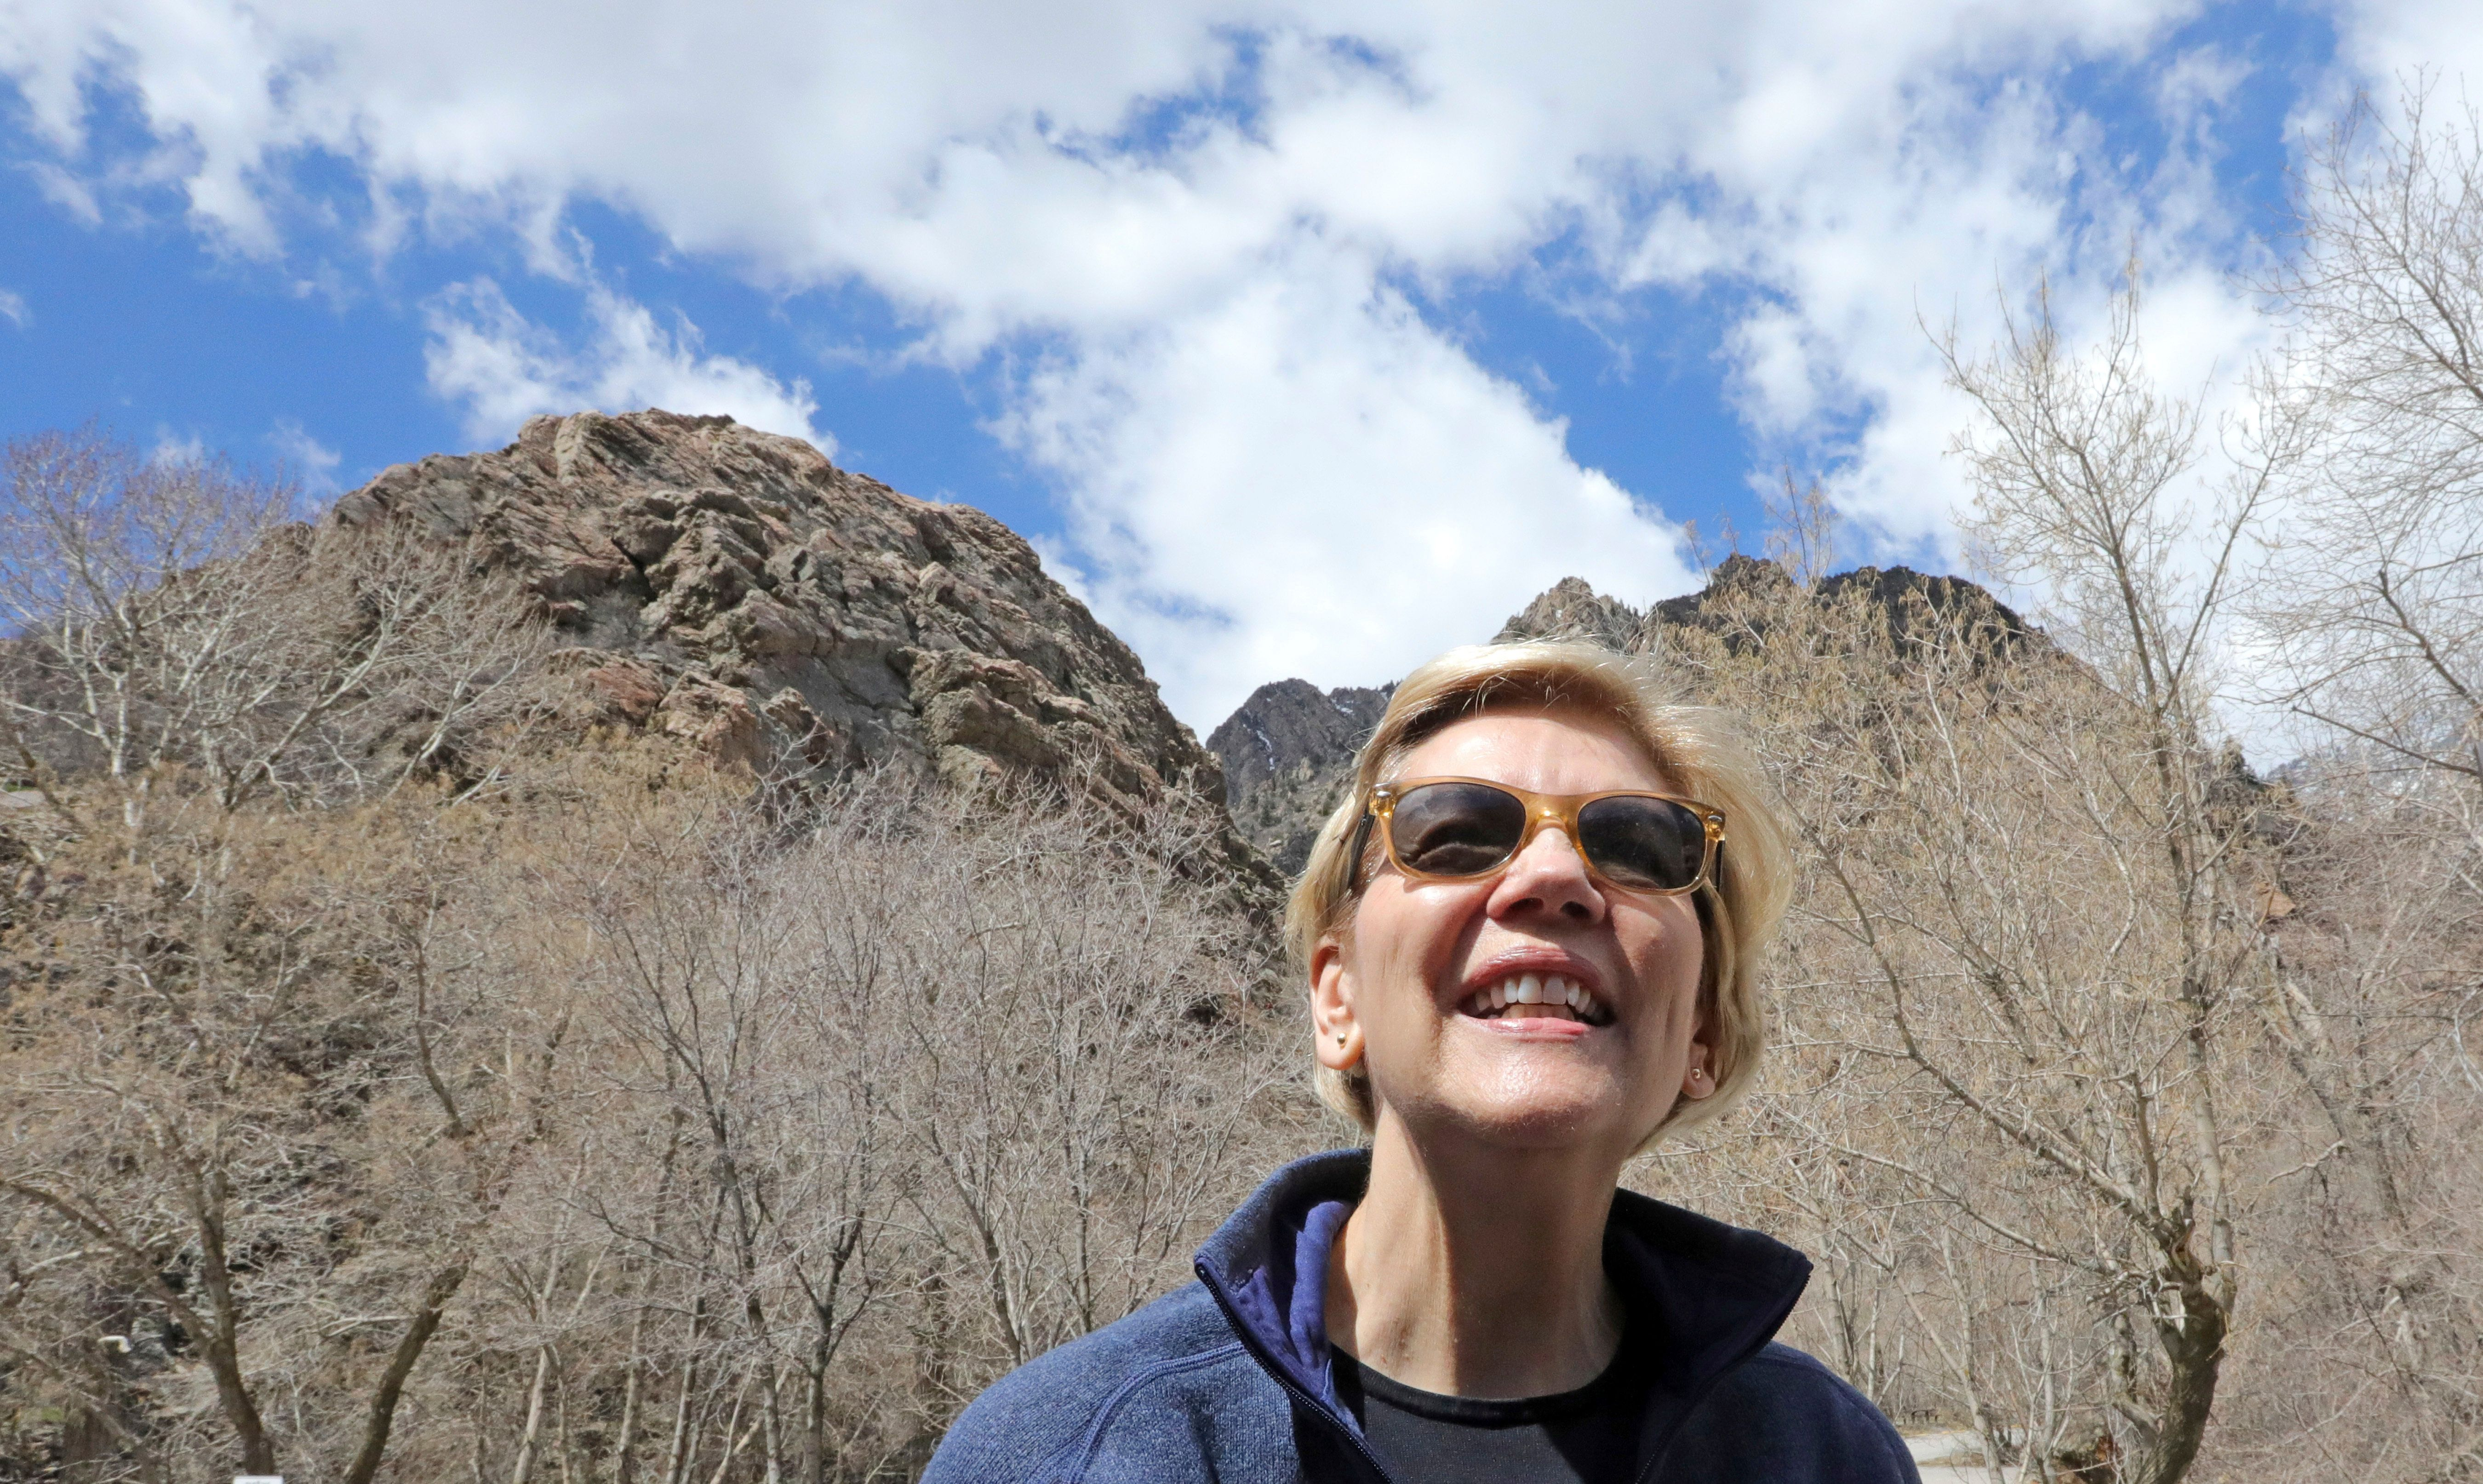 Democratic presidential candidate Sen. Elizabeth Warren, D-Mass., visits Big Cottonwood Canyon Wednesday, April 17, 2019, east of Salt Lake City. Warren is in Utah Wednesday after promising to restore broader public lands protections for two of the state's high-profile national monuments if elected president. It's a move that would not endear her to Utah's GOP establishment but could appeal to voters across the West angered by President Donald Trump's decision to shrink the monuments. (AP Photo/Rick Bowmer)